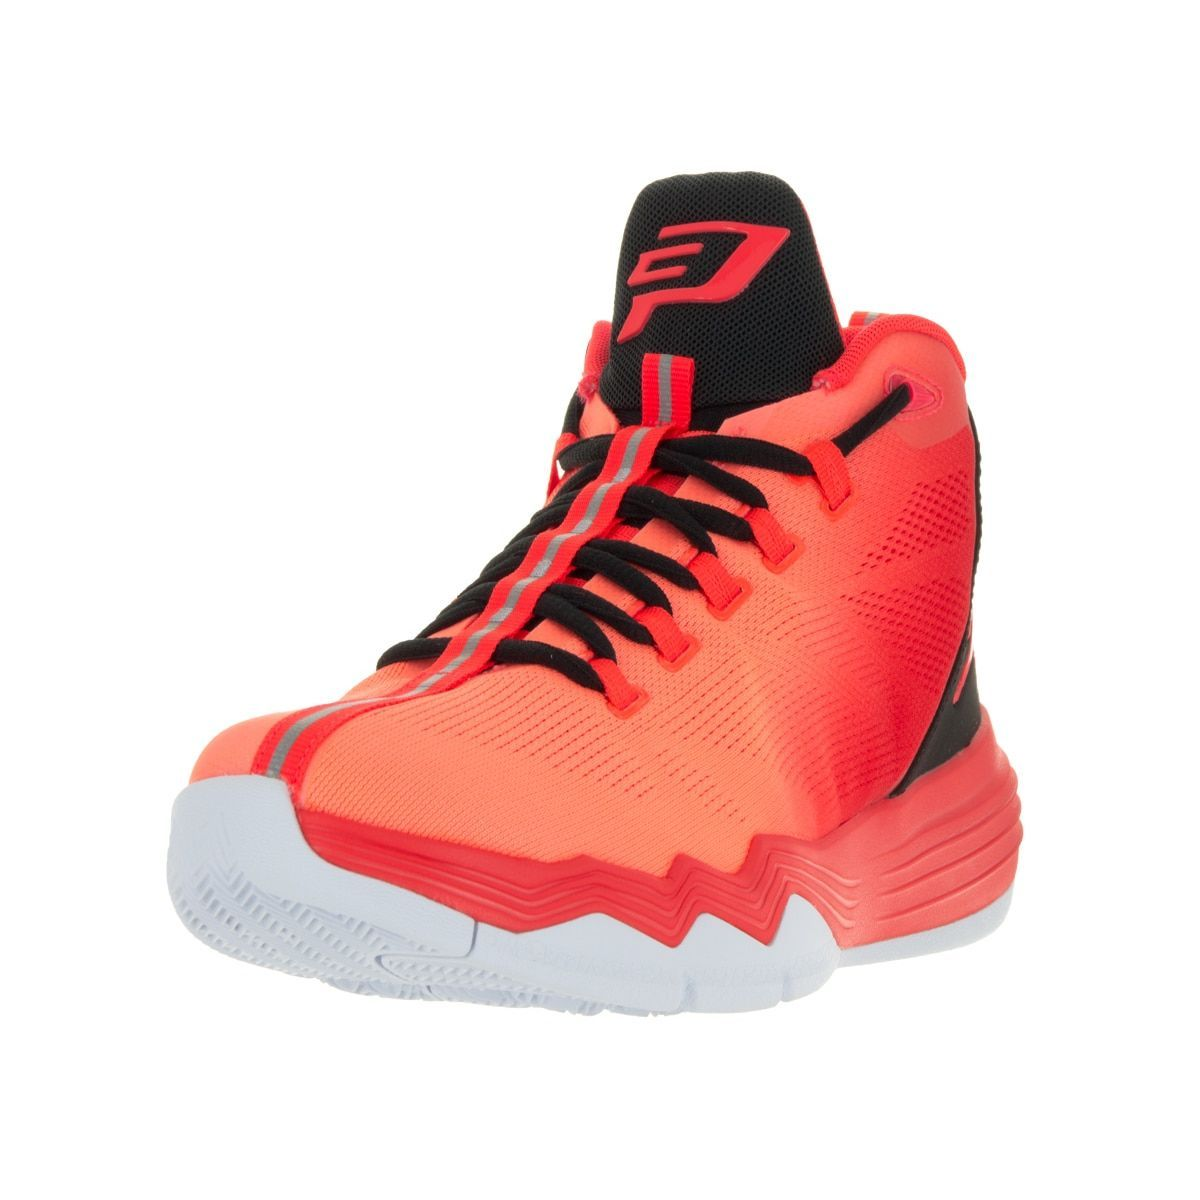 Jordan Men's Basketball Shoes Cp3 Viii Ae Performance Hot Outlet